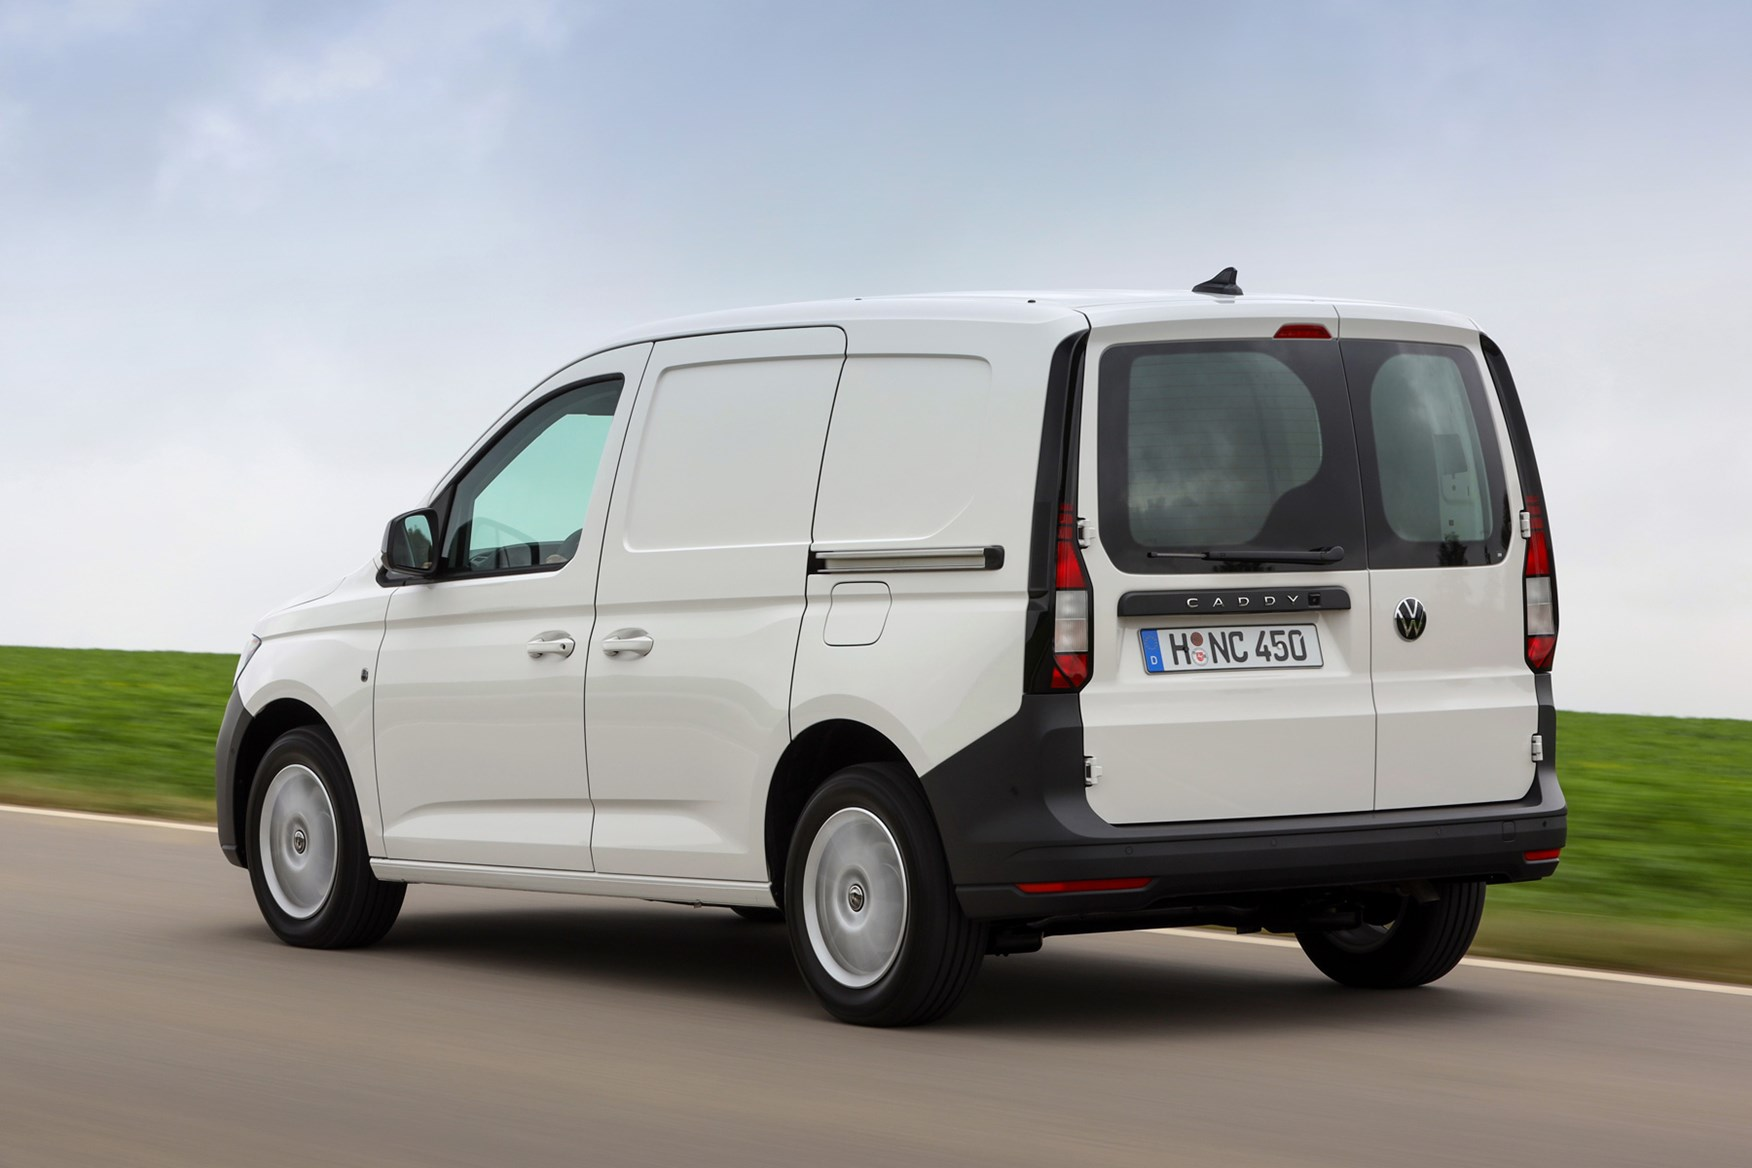 Volkswagen Caddy Cargo Van Dimensions 2021 On Capacity Payload Volume Towing Parkers